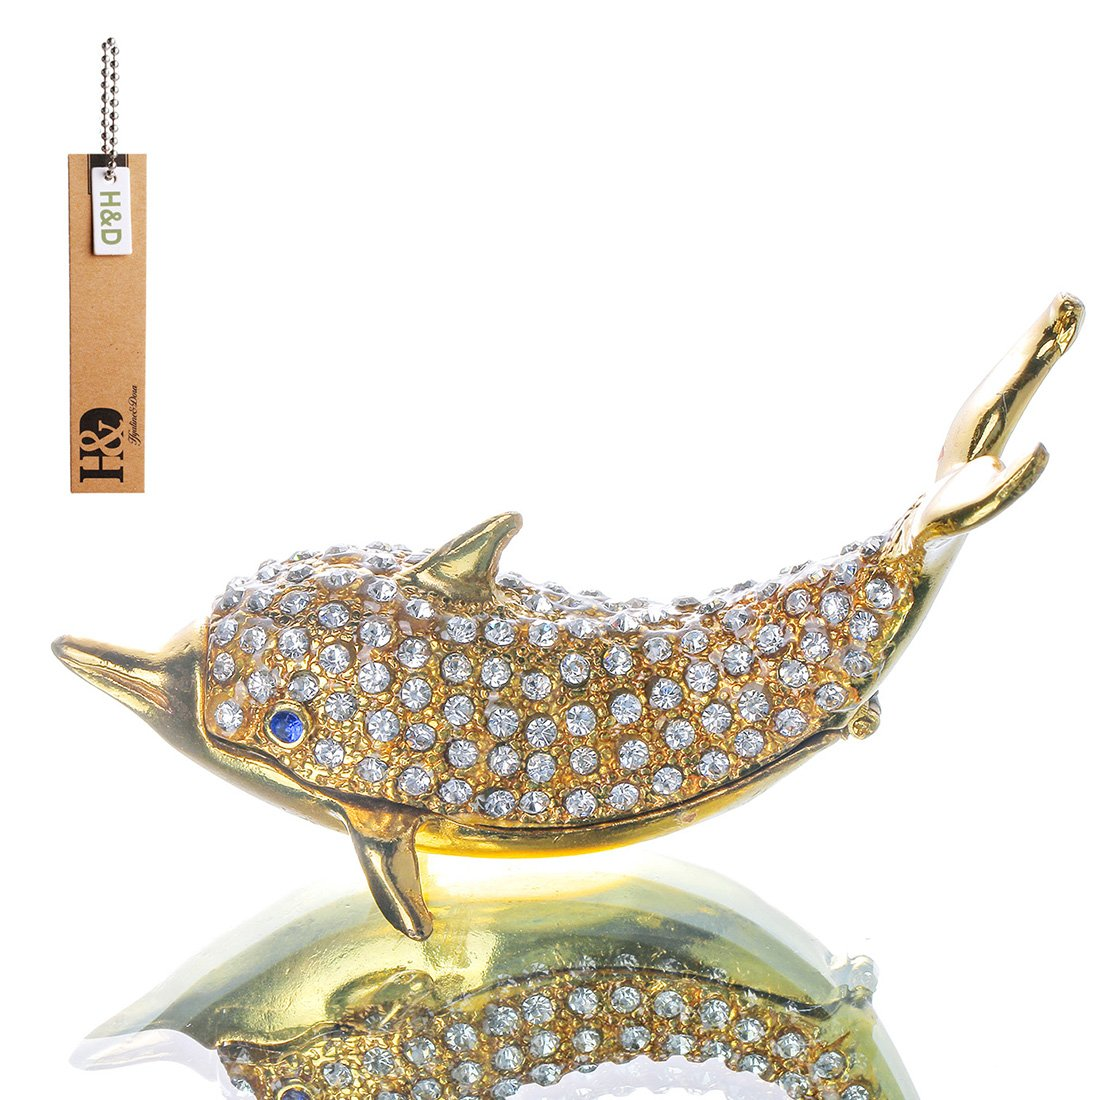 YUFENG Dolphins Enameled Crystal Trinket Box Hinged Ring Holder Small Jewelry Bejeweled Trinket Boxes Animal Figurine Collectible Decoration Gift